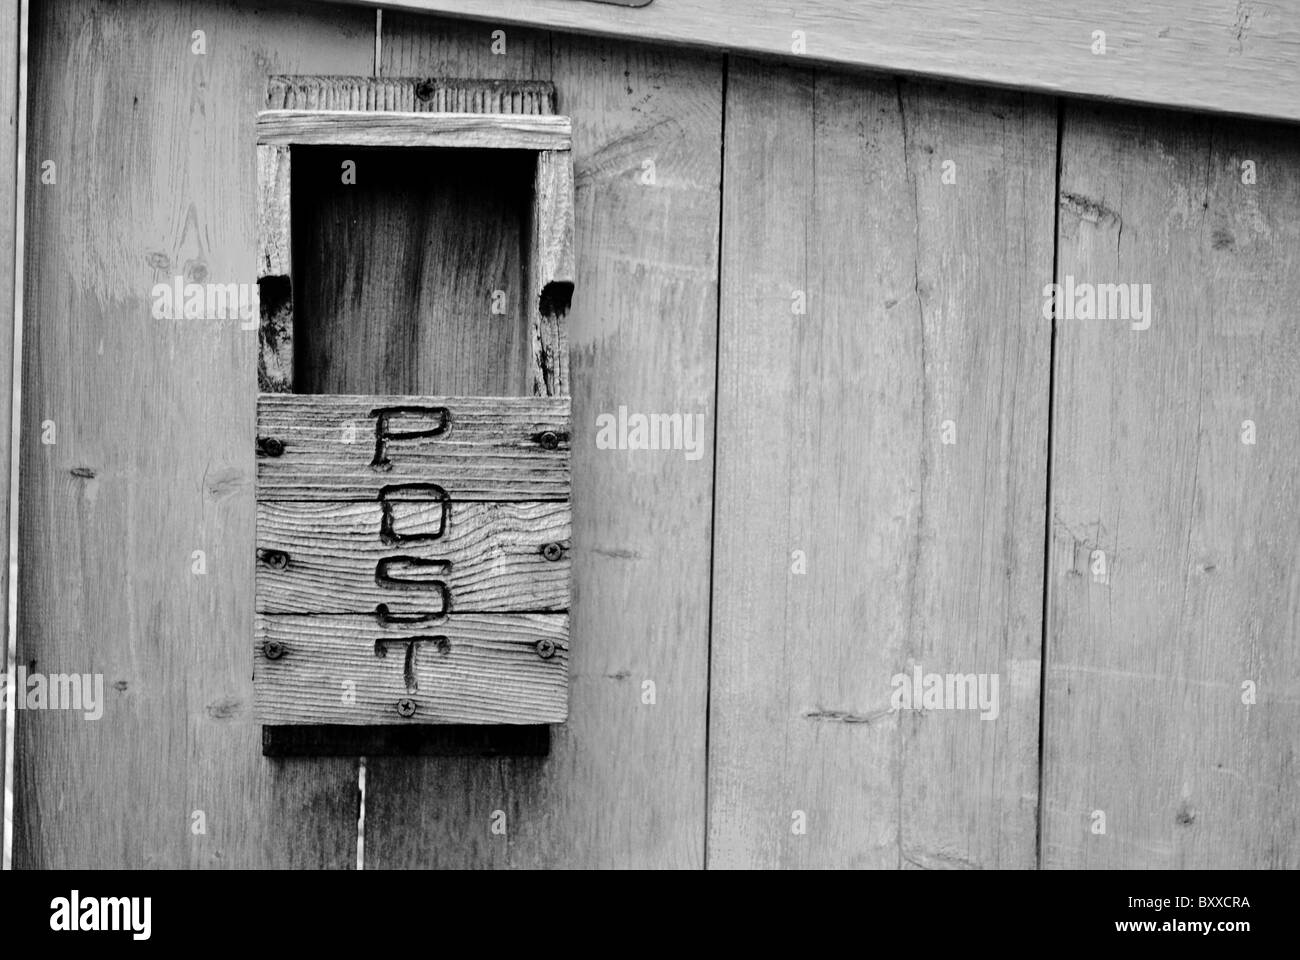 Old postal box on the wooden wall. - Stock Image